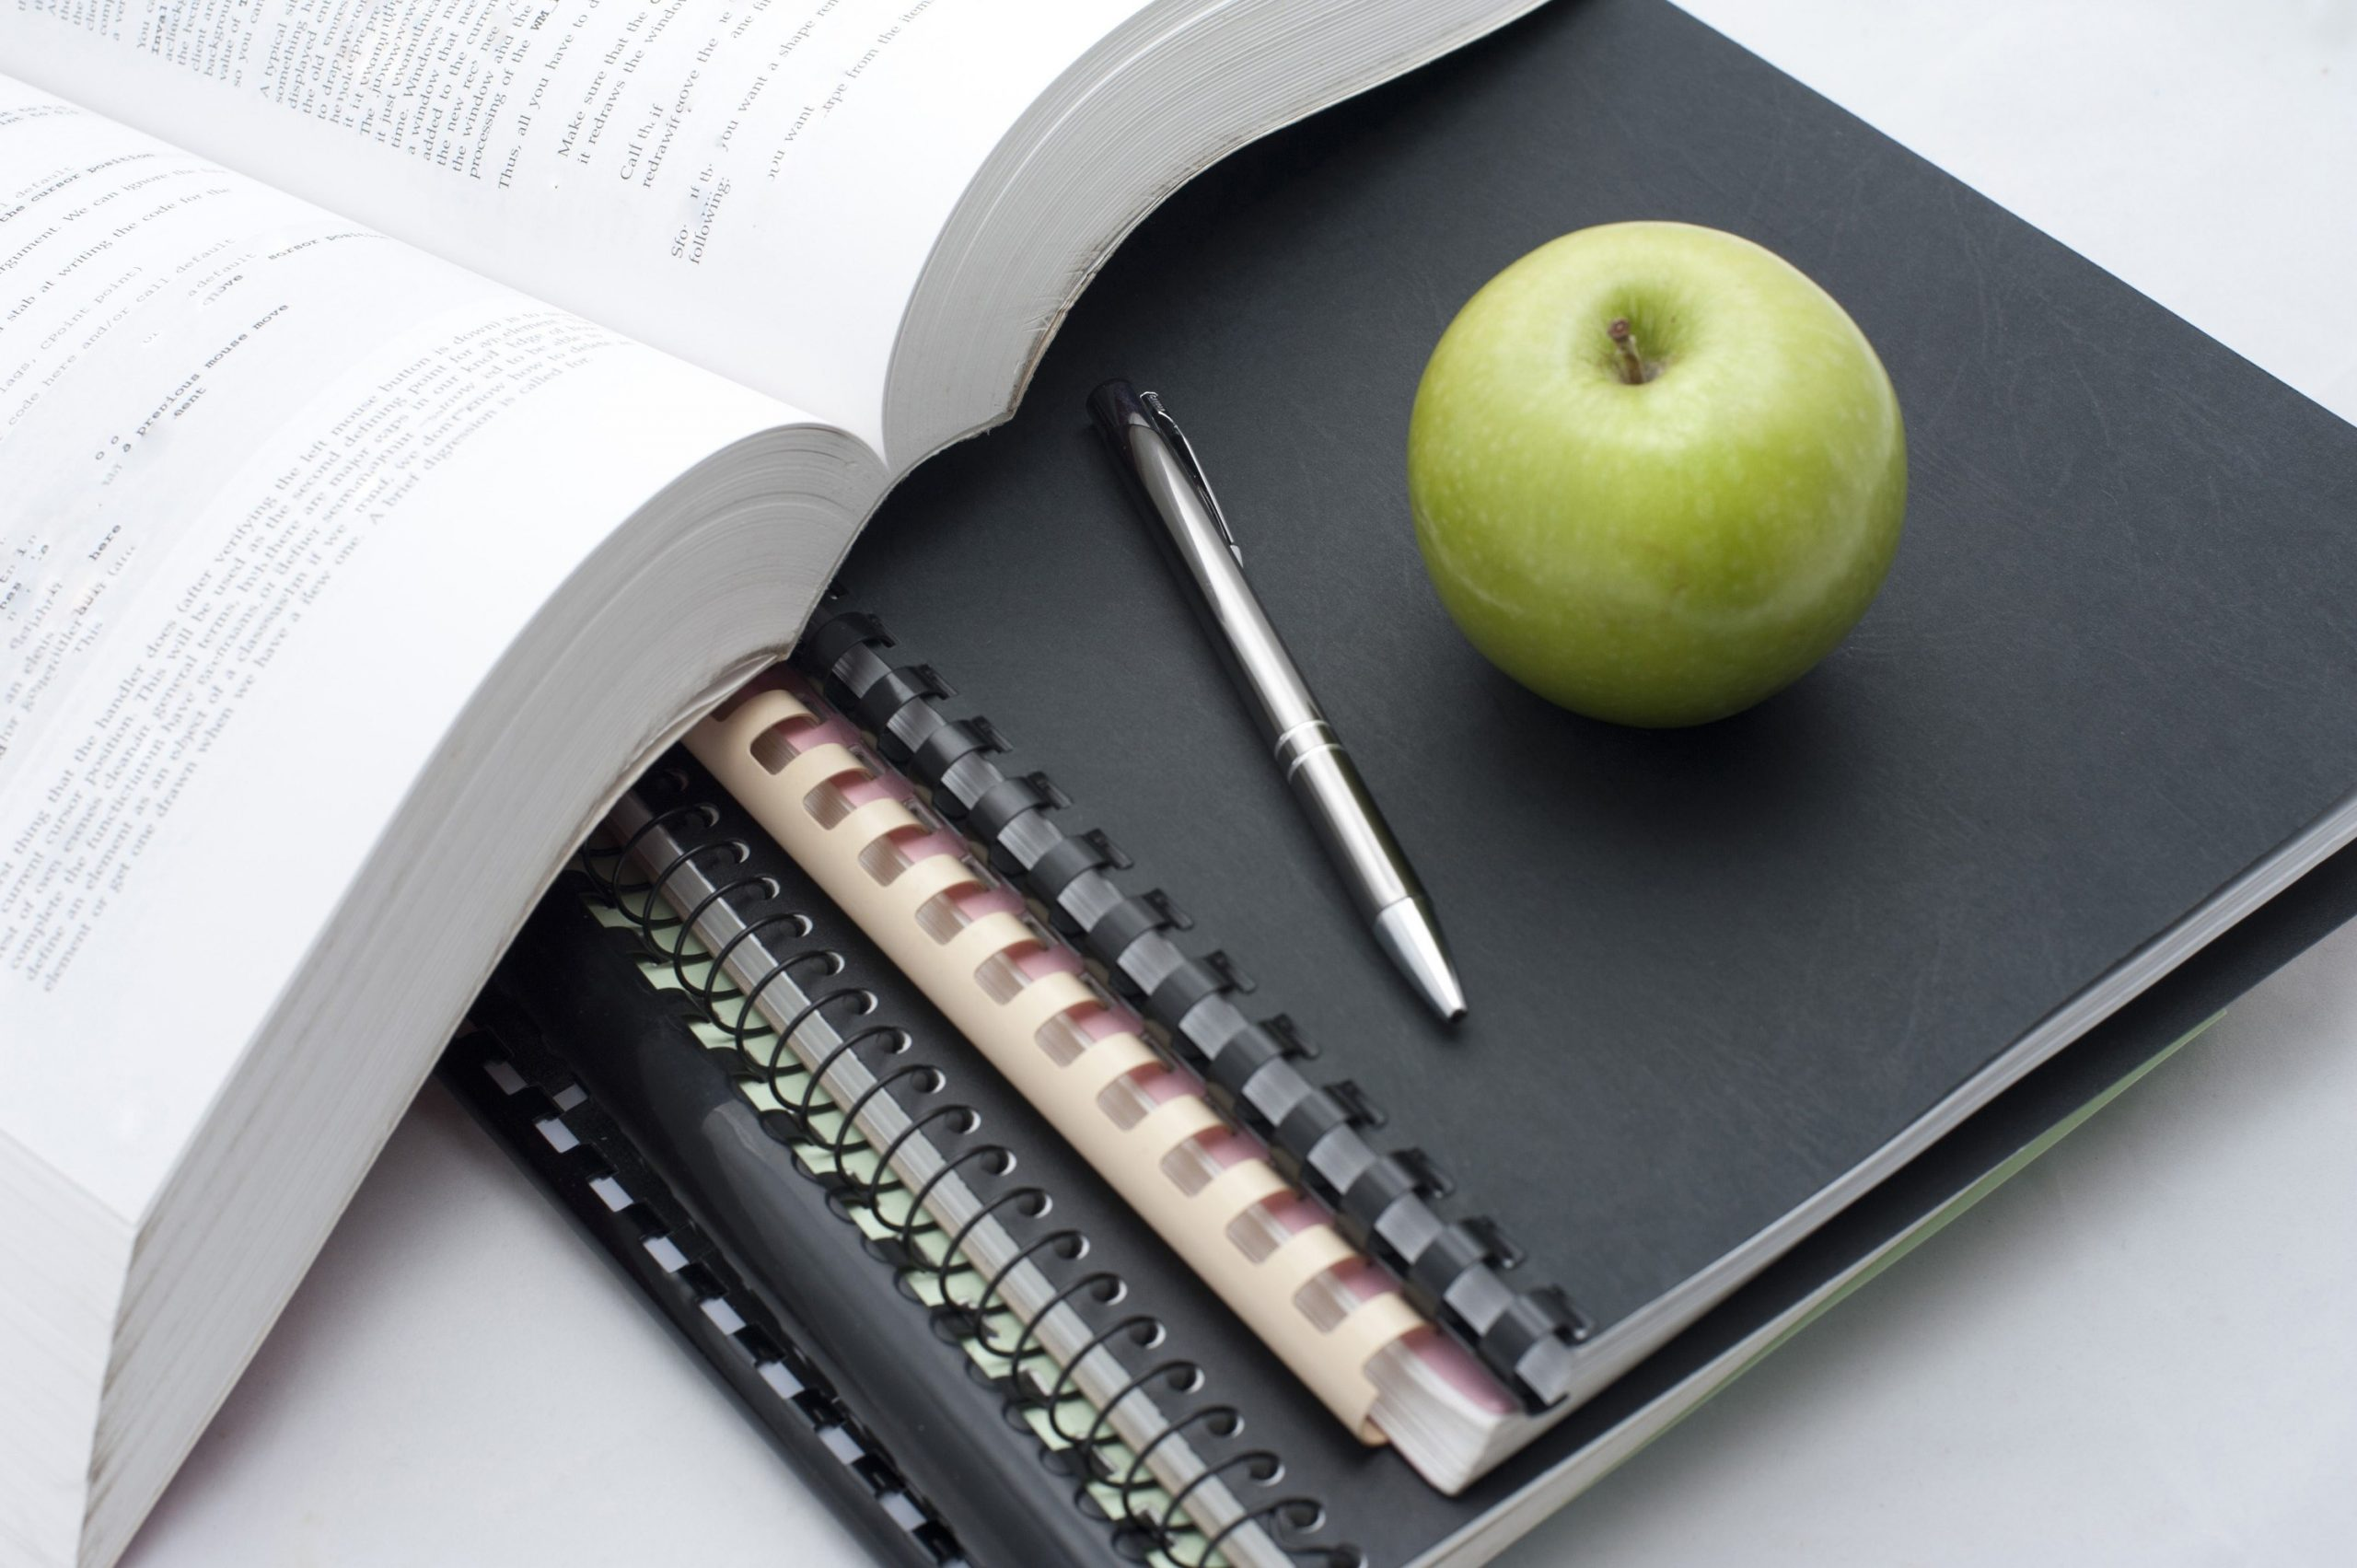 Conceptual background for school reading and studies with a fresh juicy green apple and pen lying on spiral bound notebooks alongside an open book